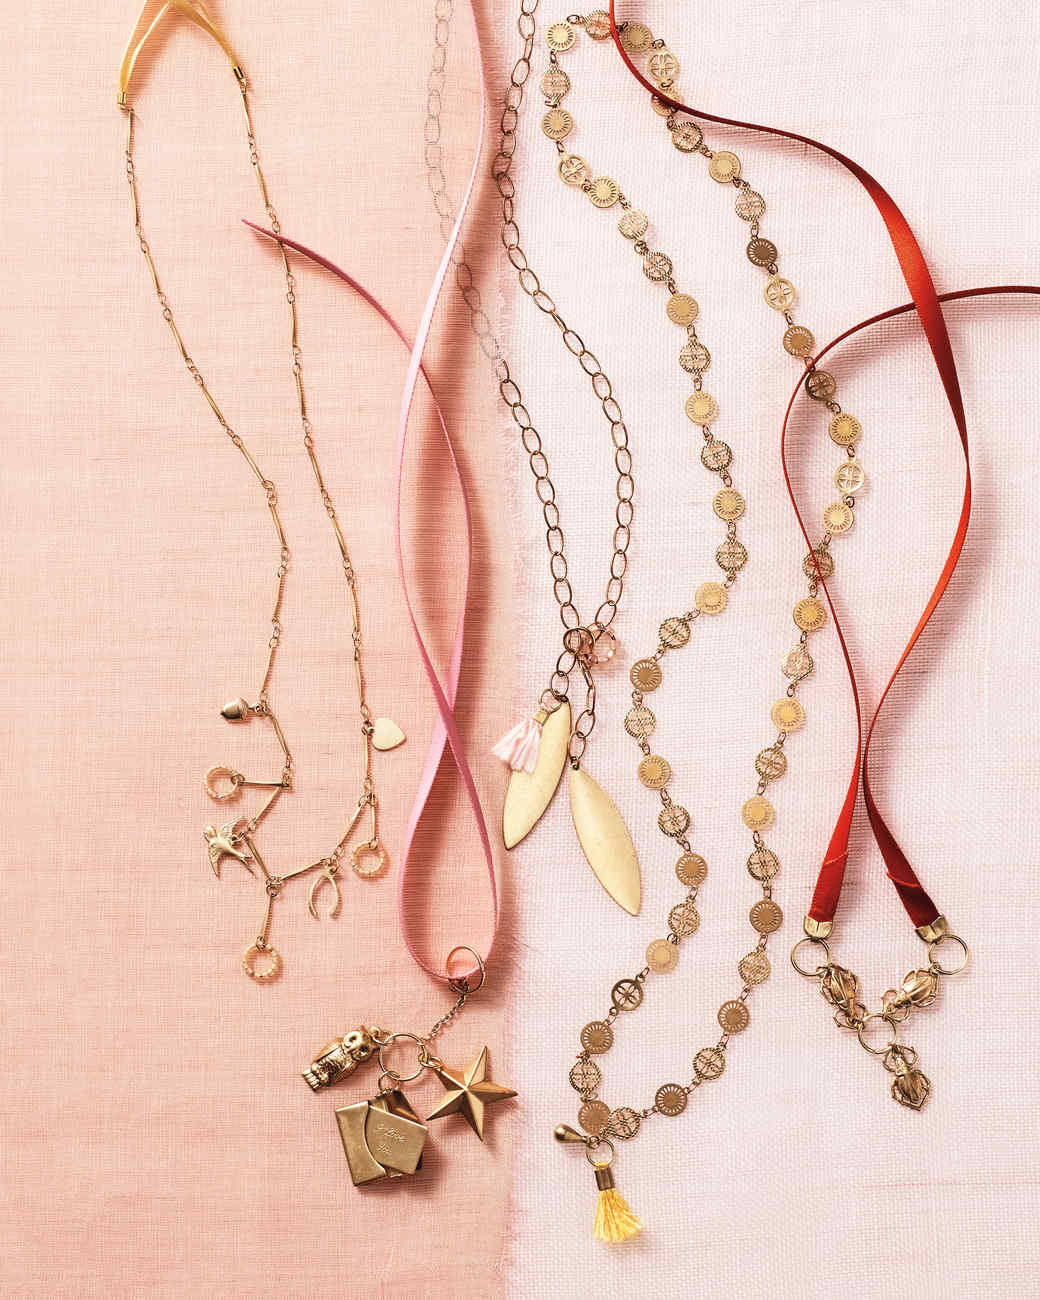 chains-charms-068-d112541.jpg